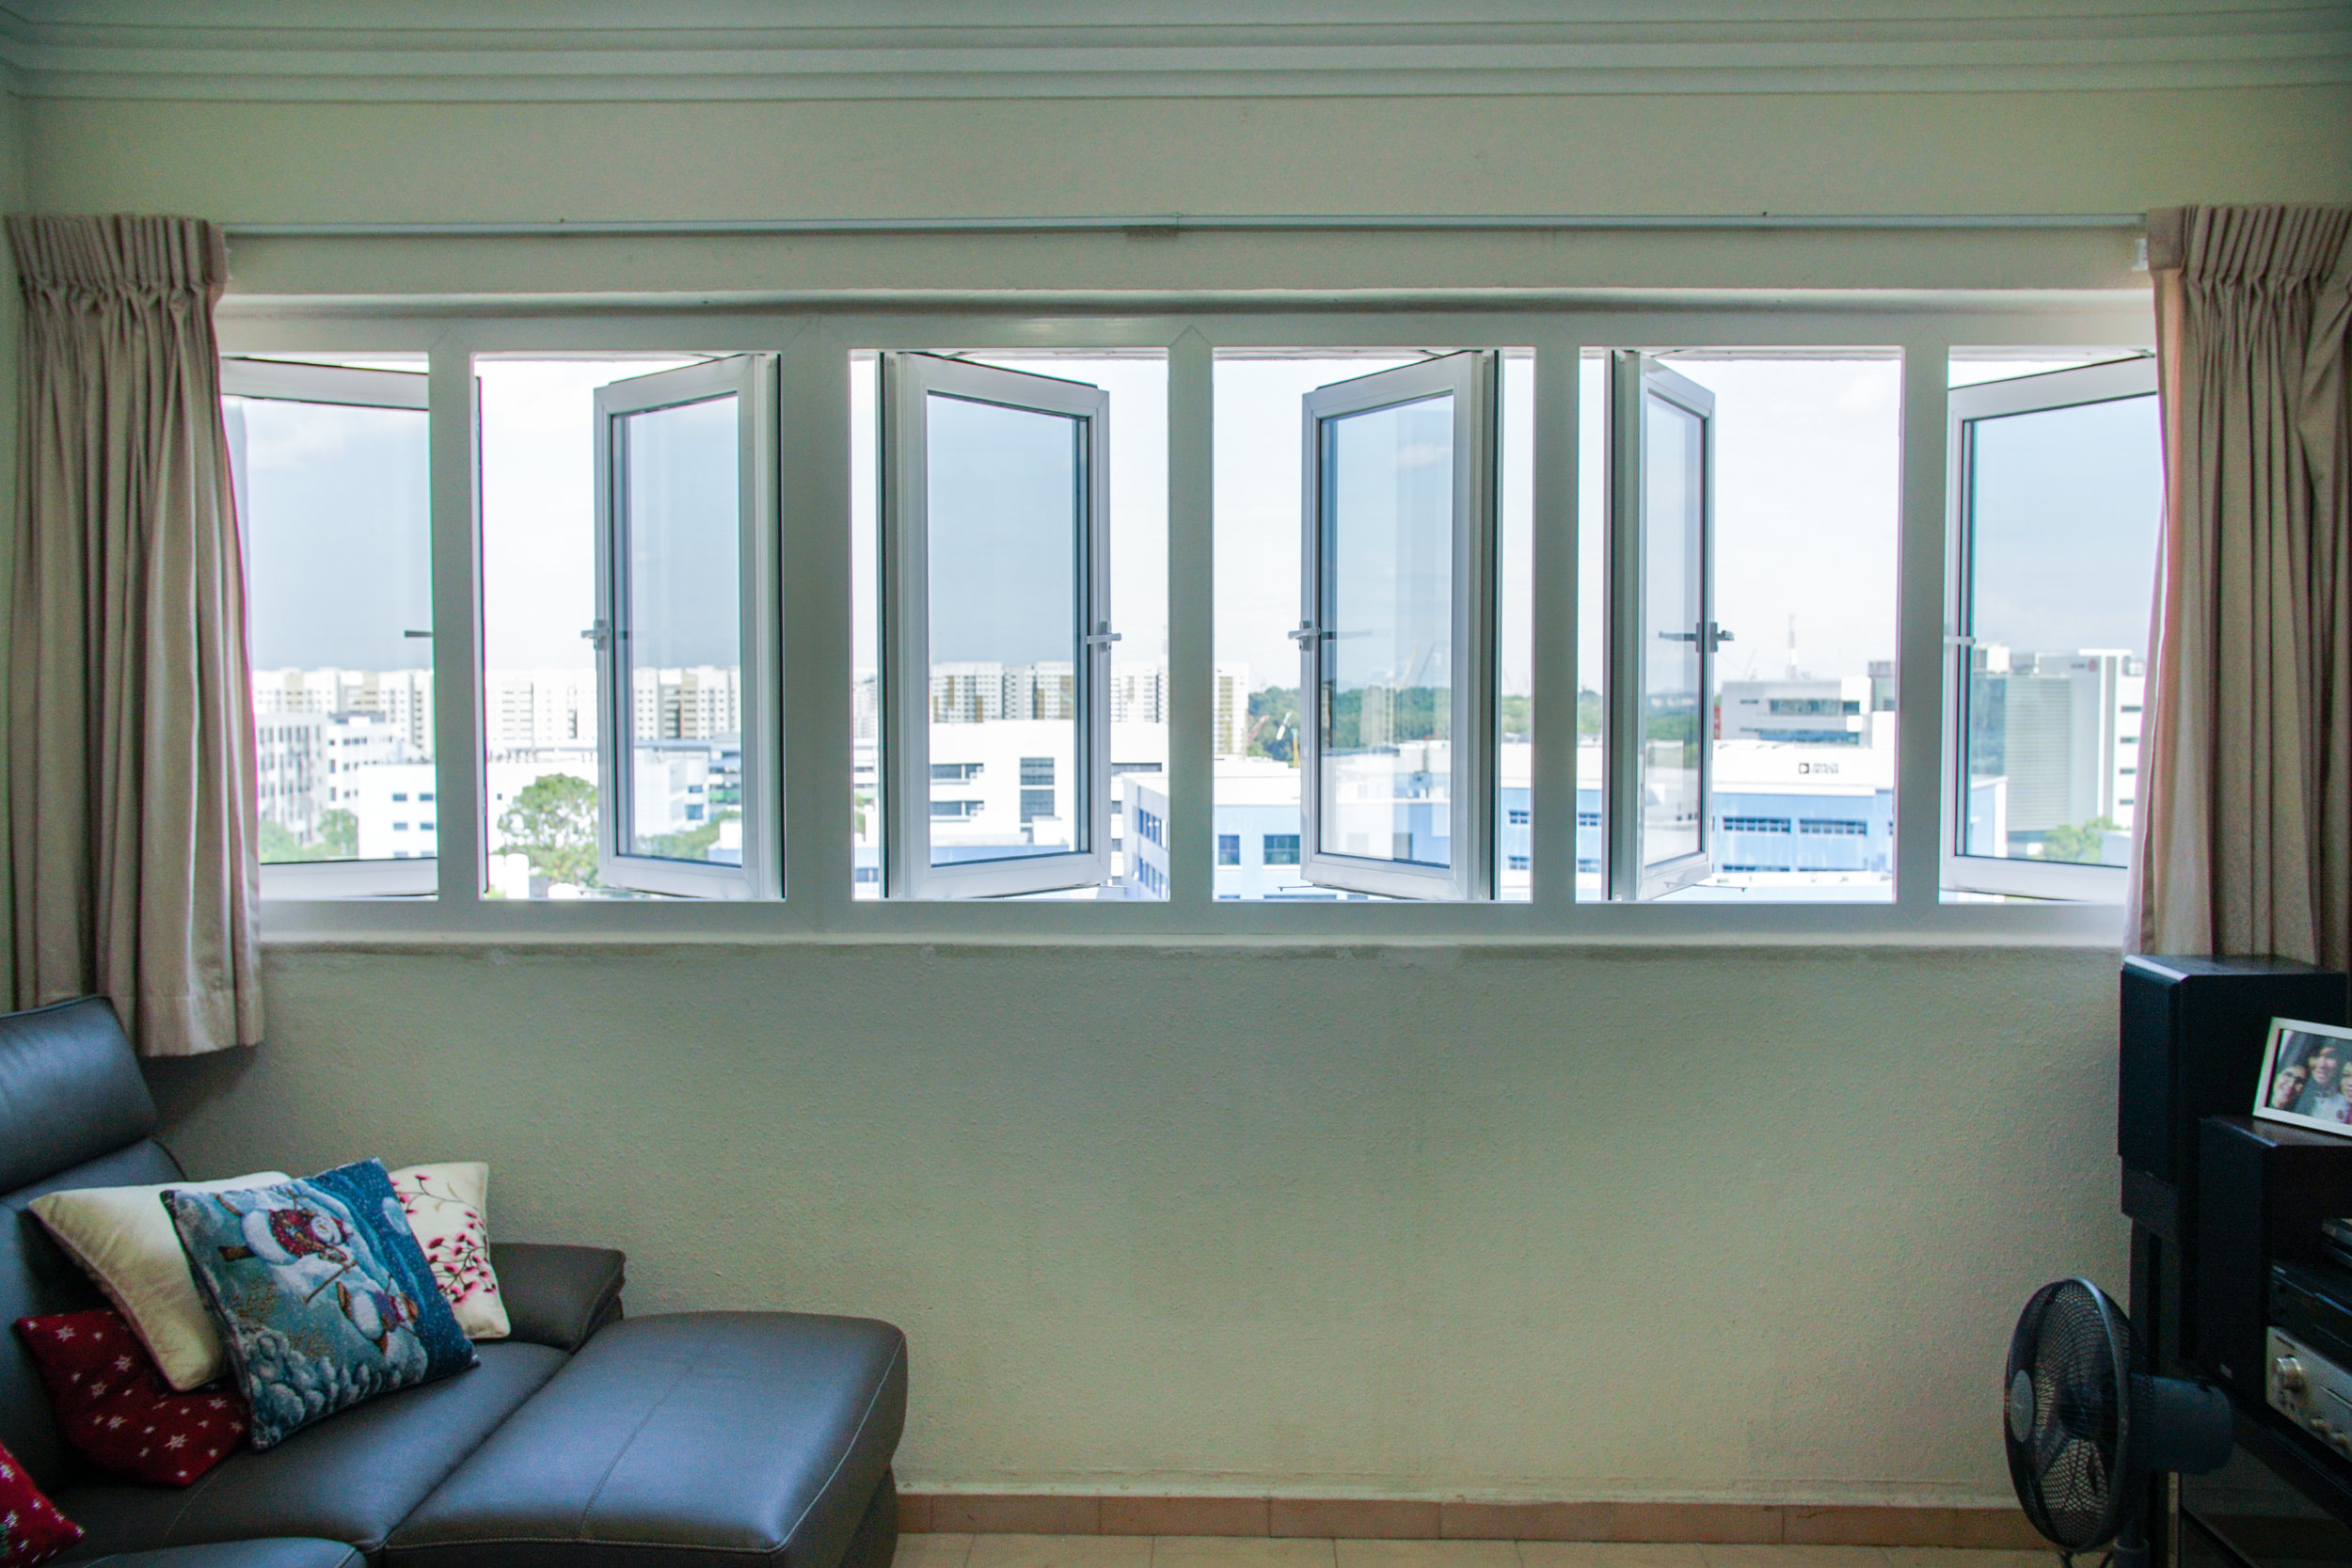 soundproof windows-19.jpg